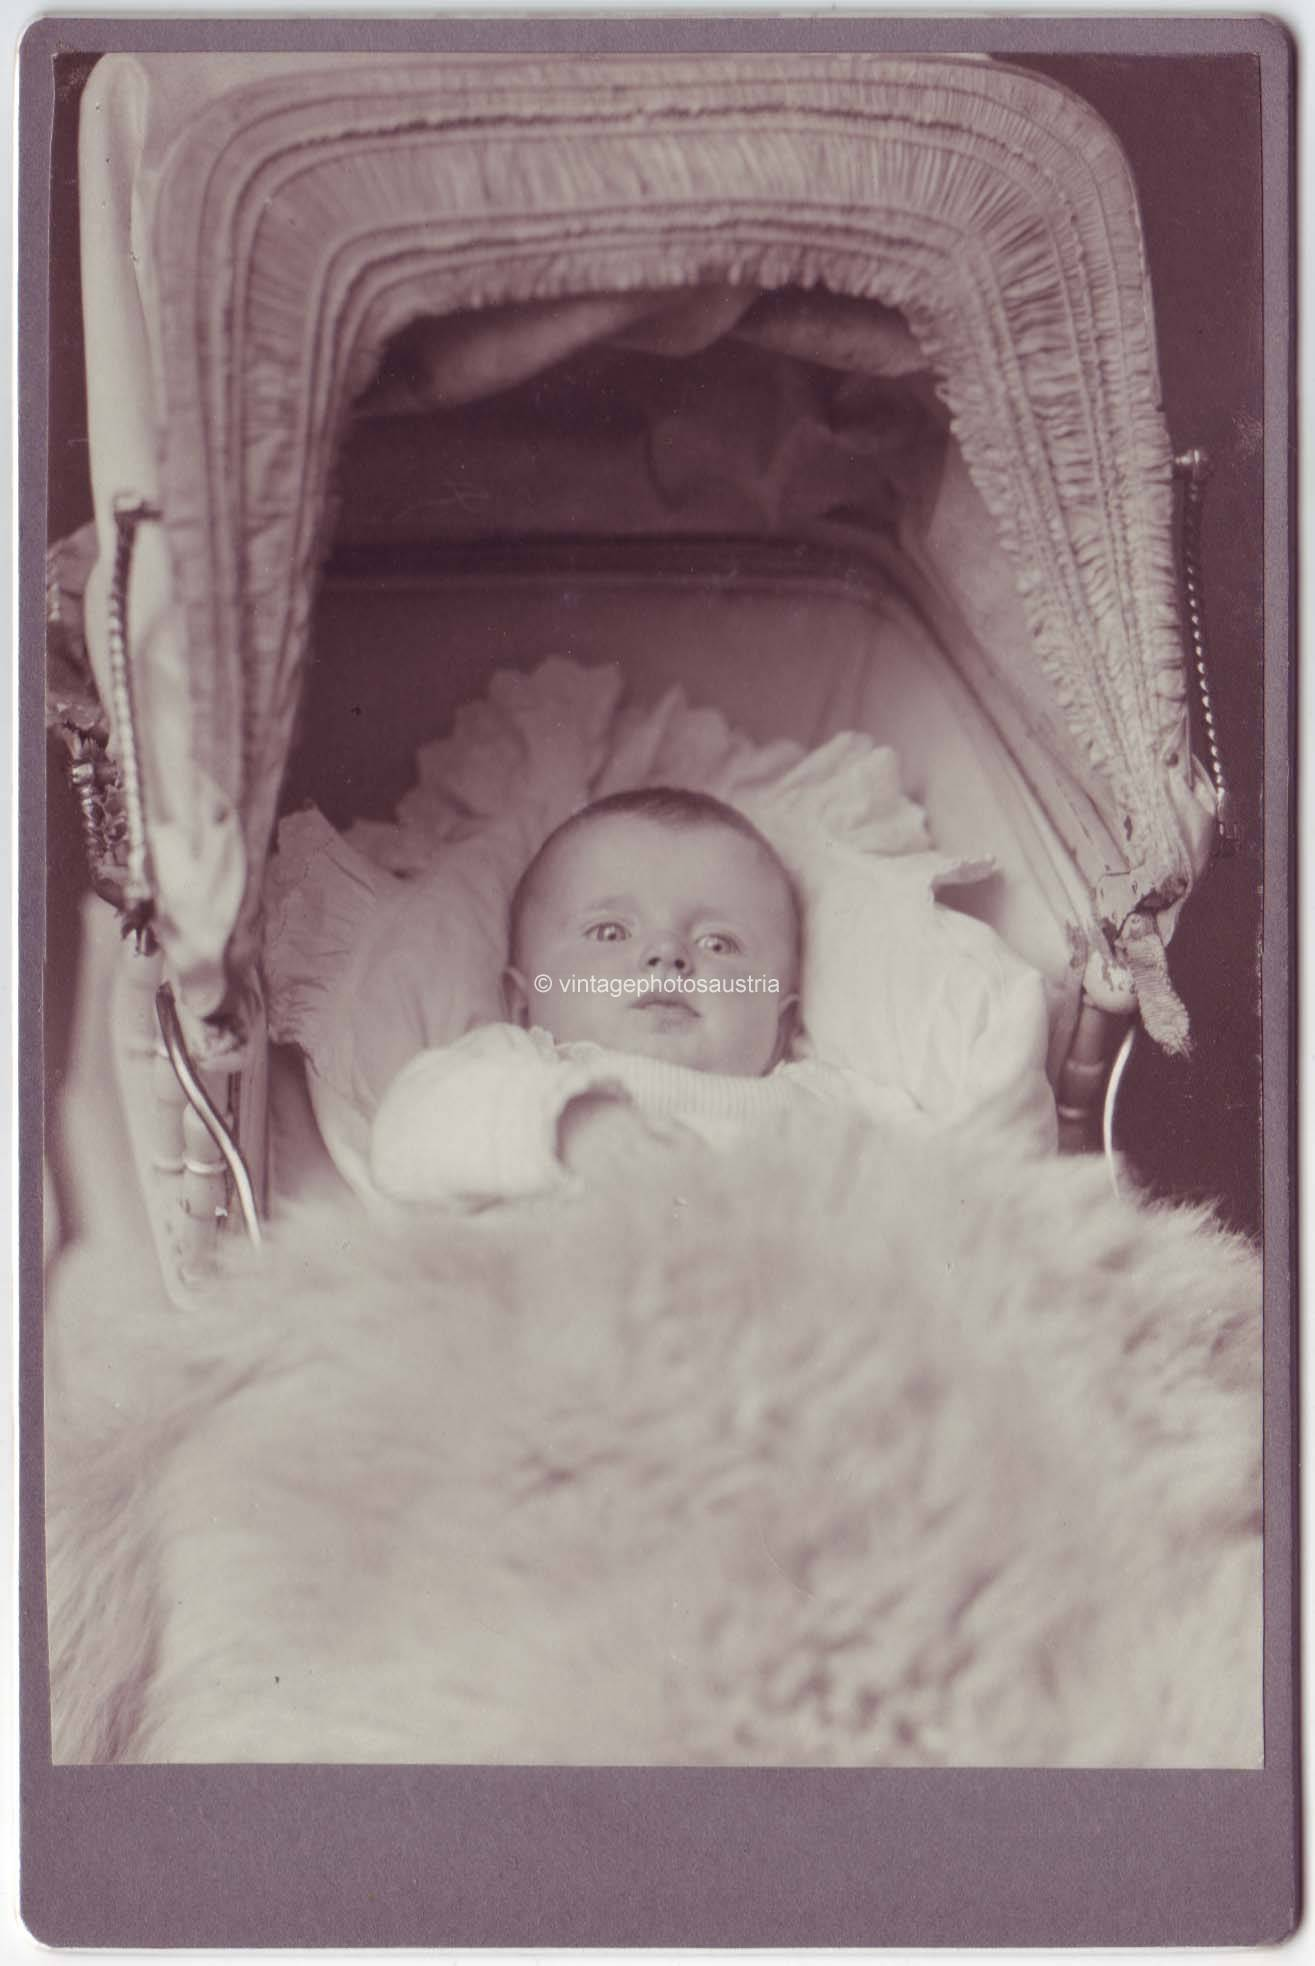 kabinettfoto baby im kinderwagen foto um 1900 ebay. Black Bedroom Furniture Sets. Home Design Ideas